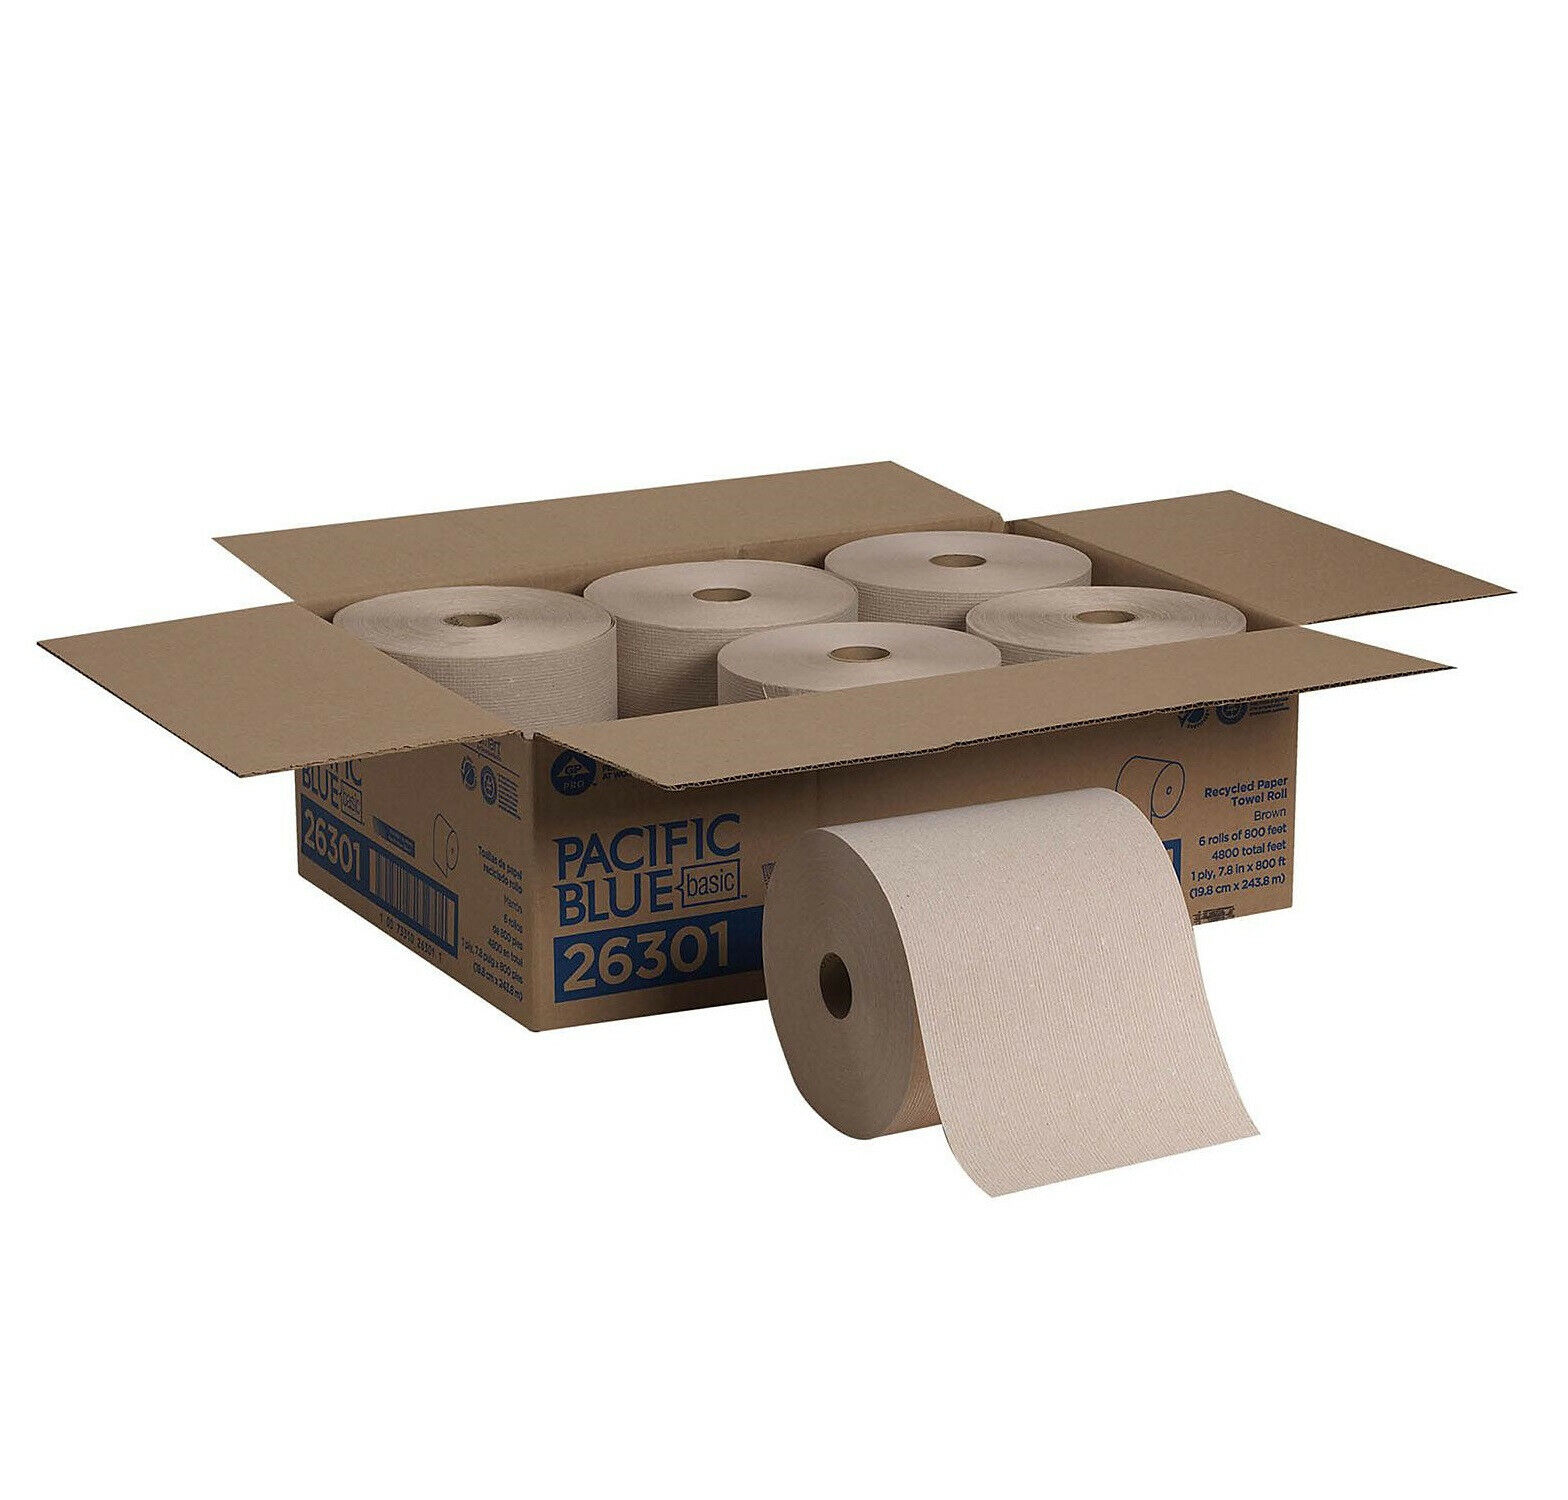 Georgia Pacific enMotion Paper Towel Roll 7/8 x 800ft White